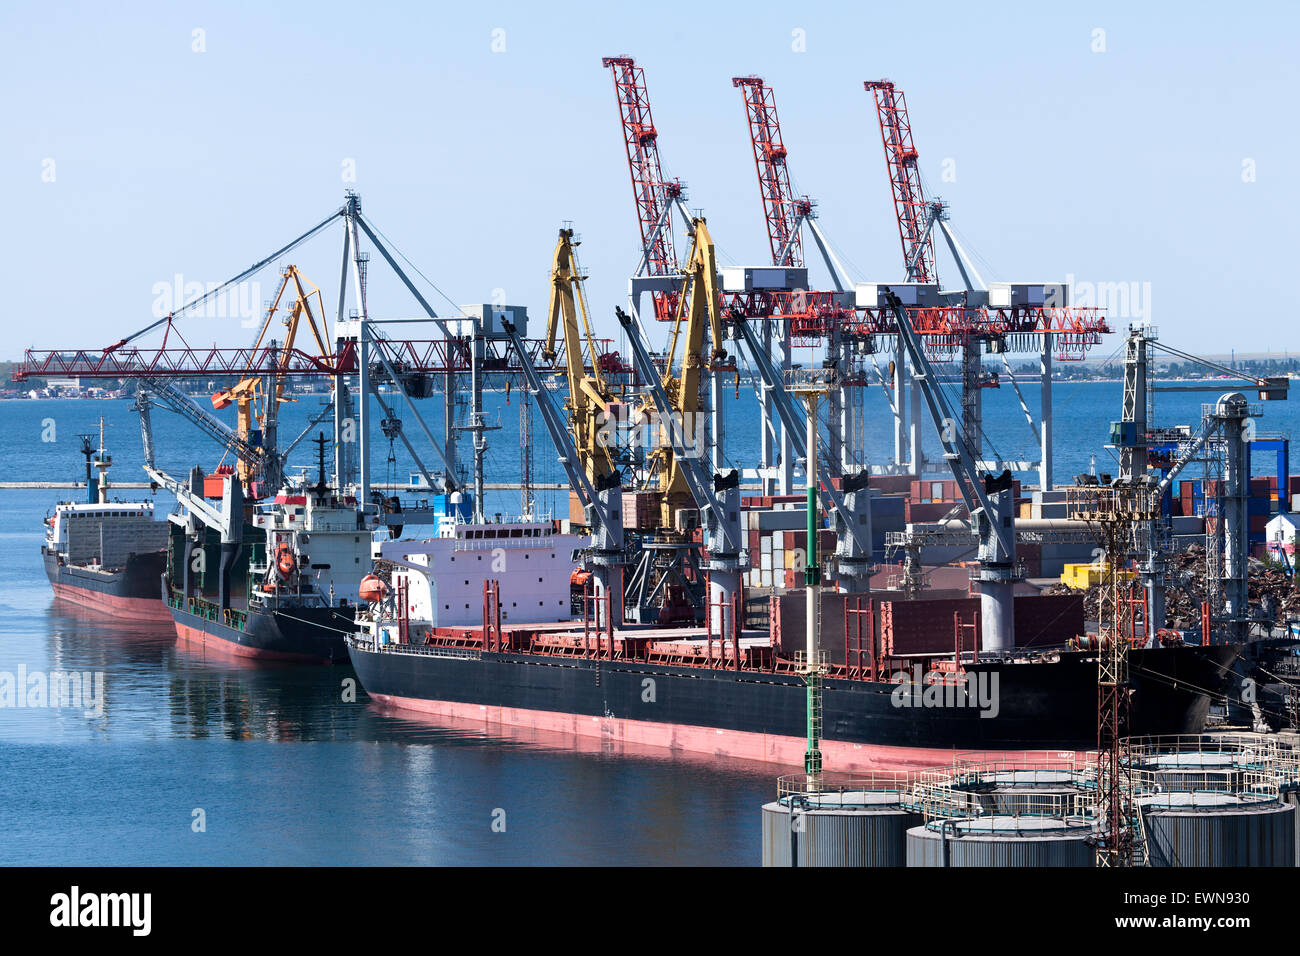 bulk carriers - Stock Image